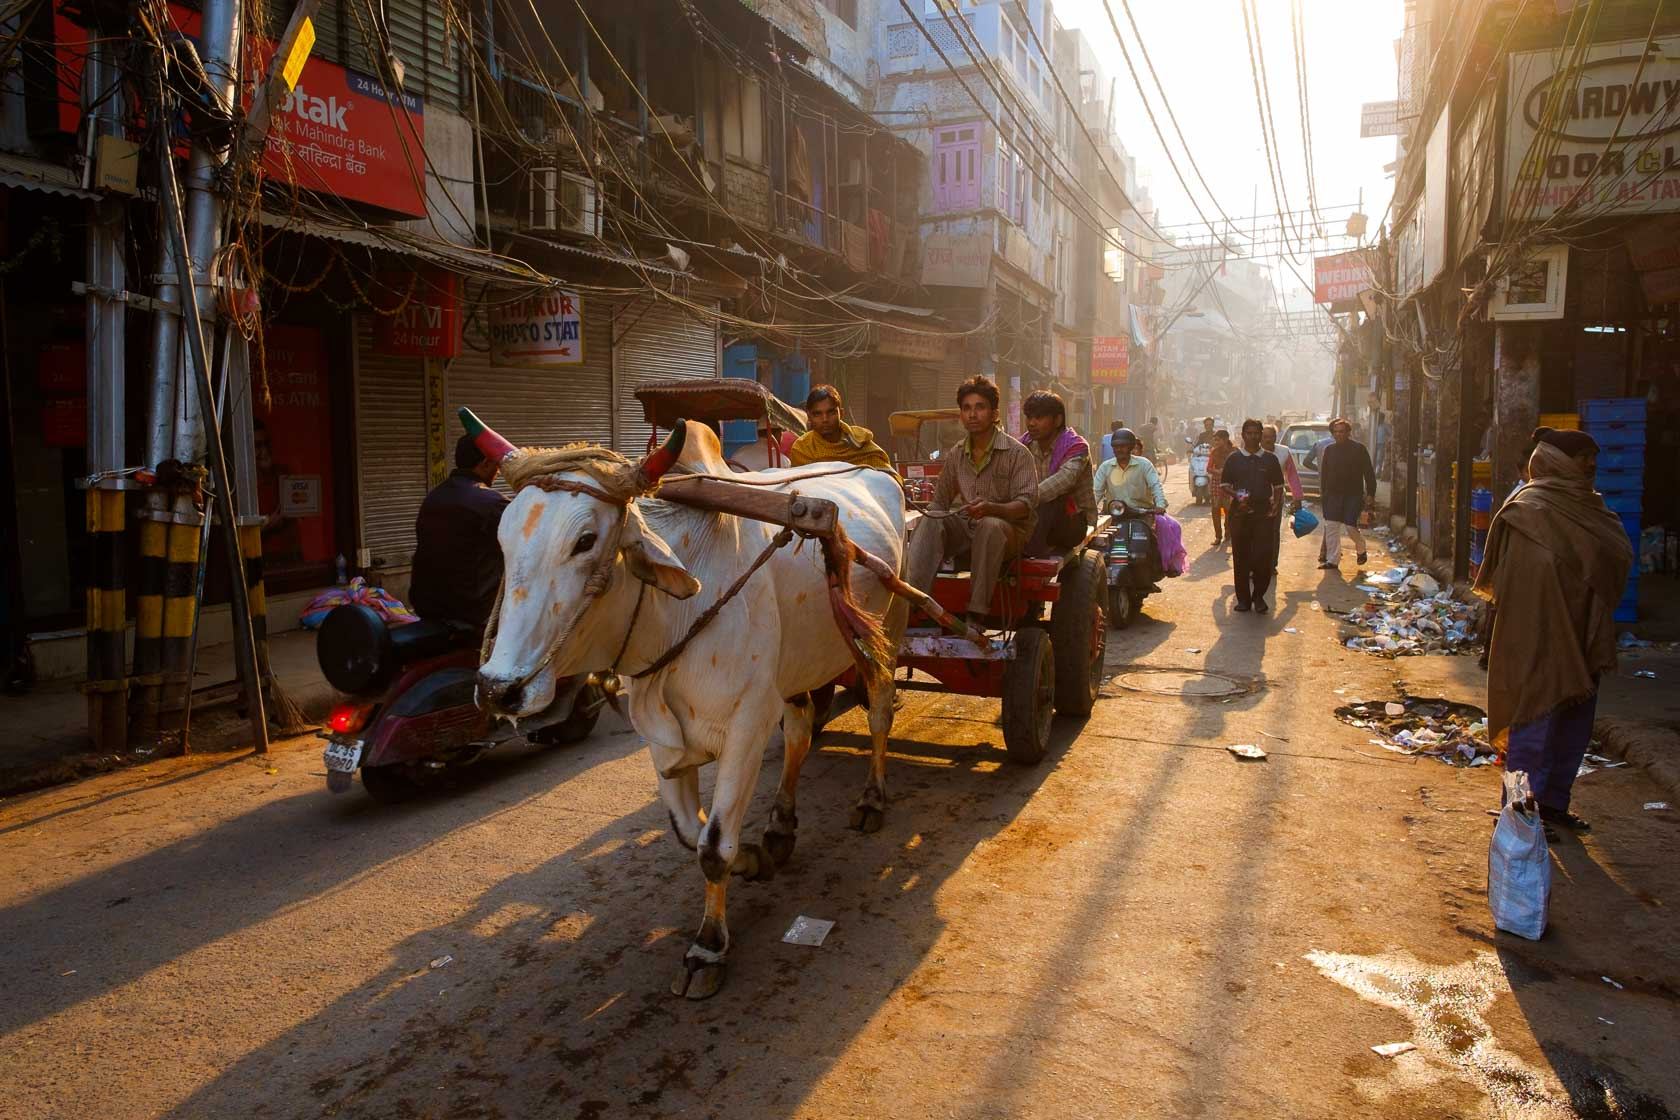 Early Morning in the Bazar, Delhi, India